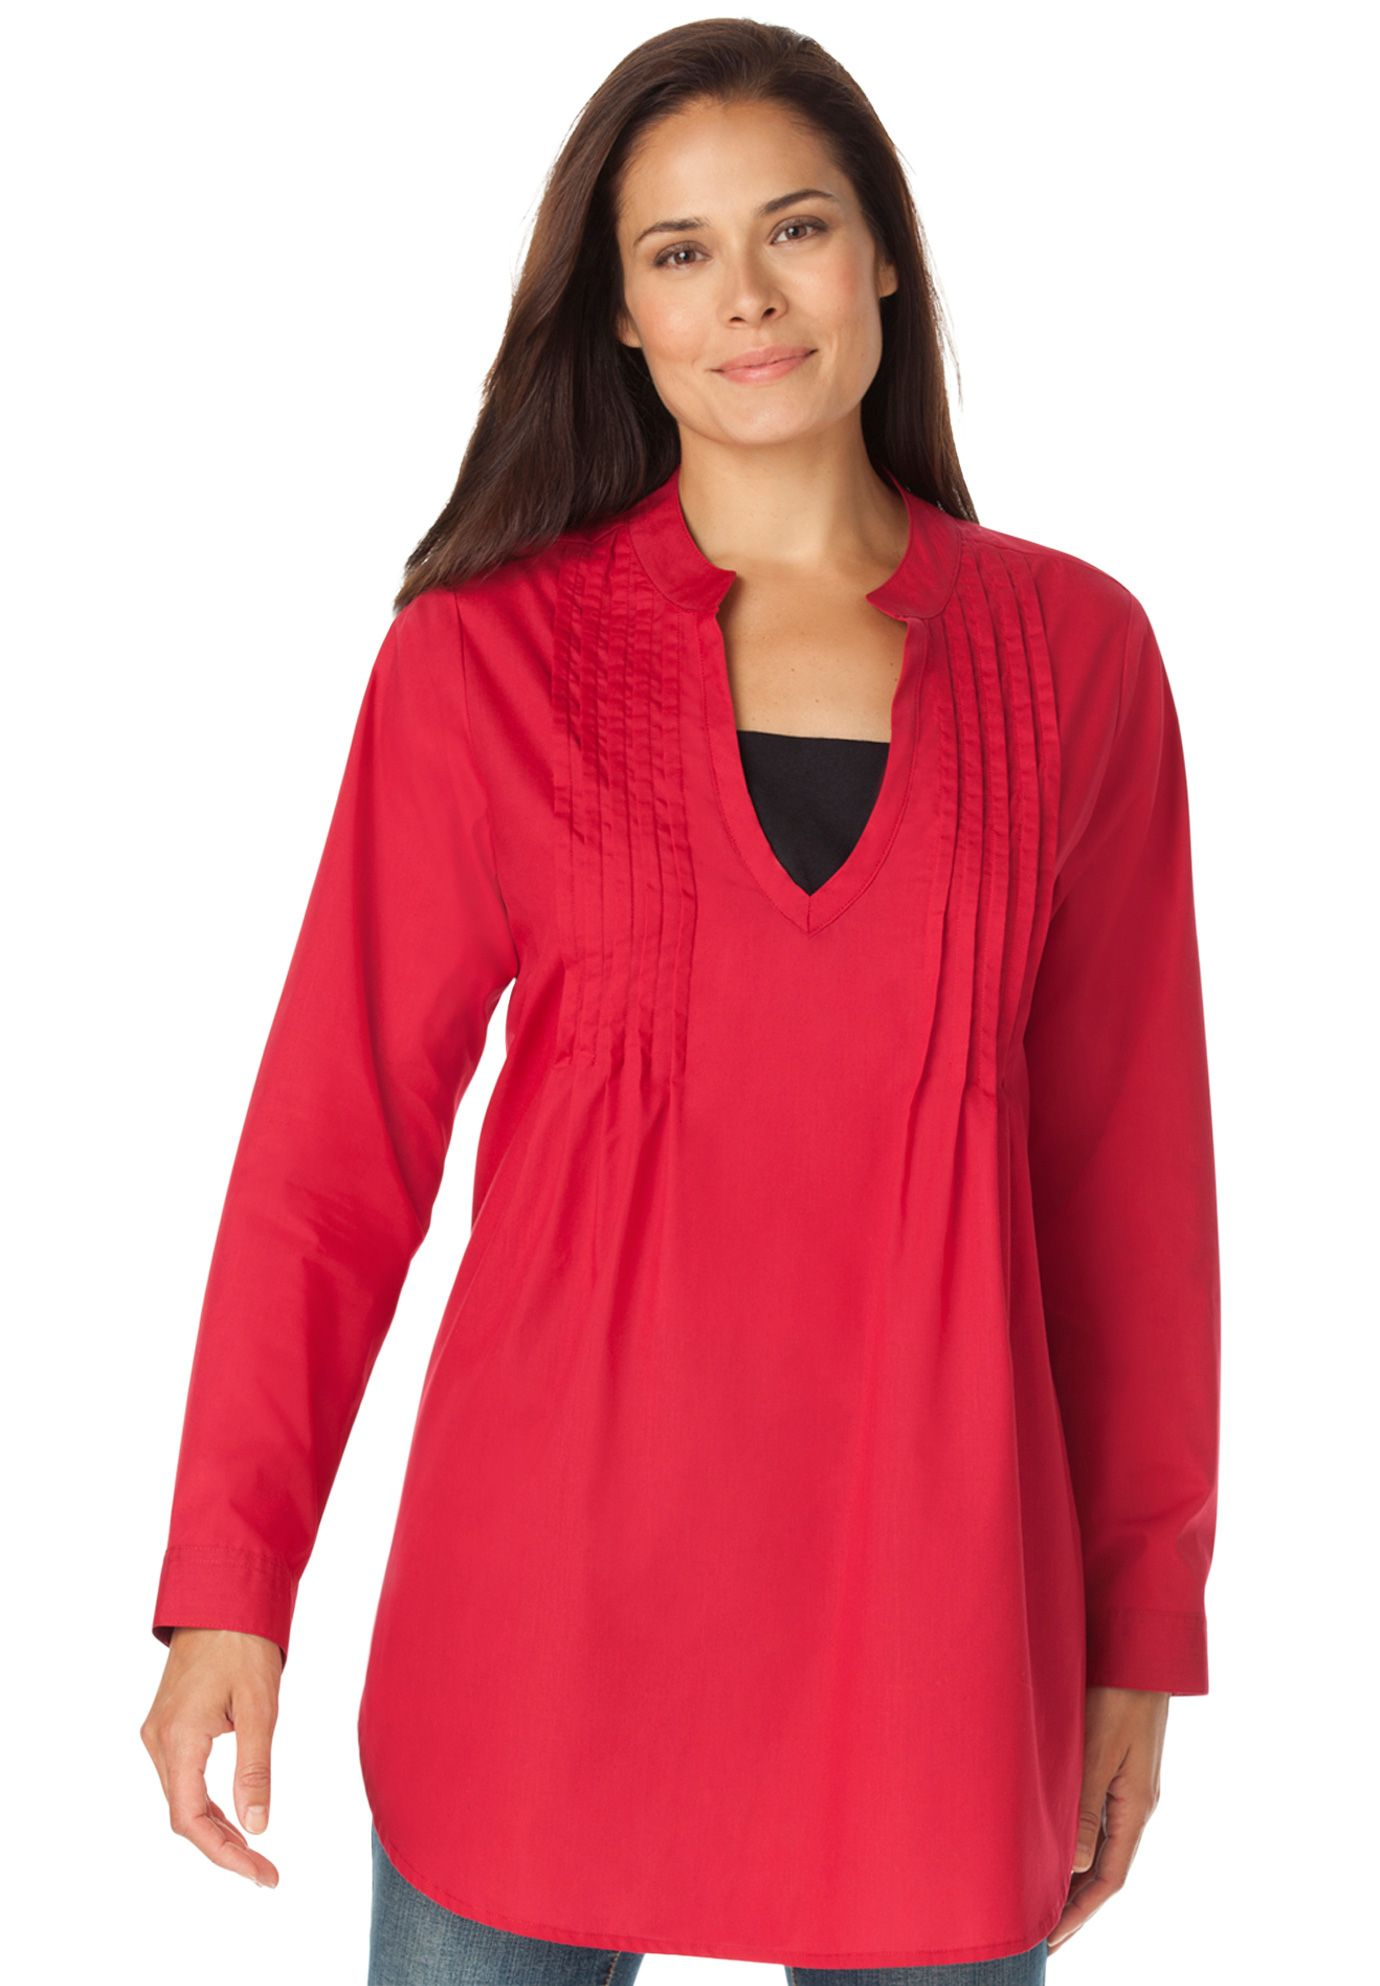 b854aac8fa1d8 Layered-look tunic shirt with long sleeves